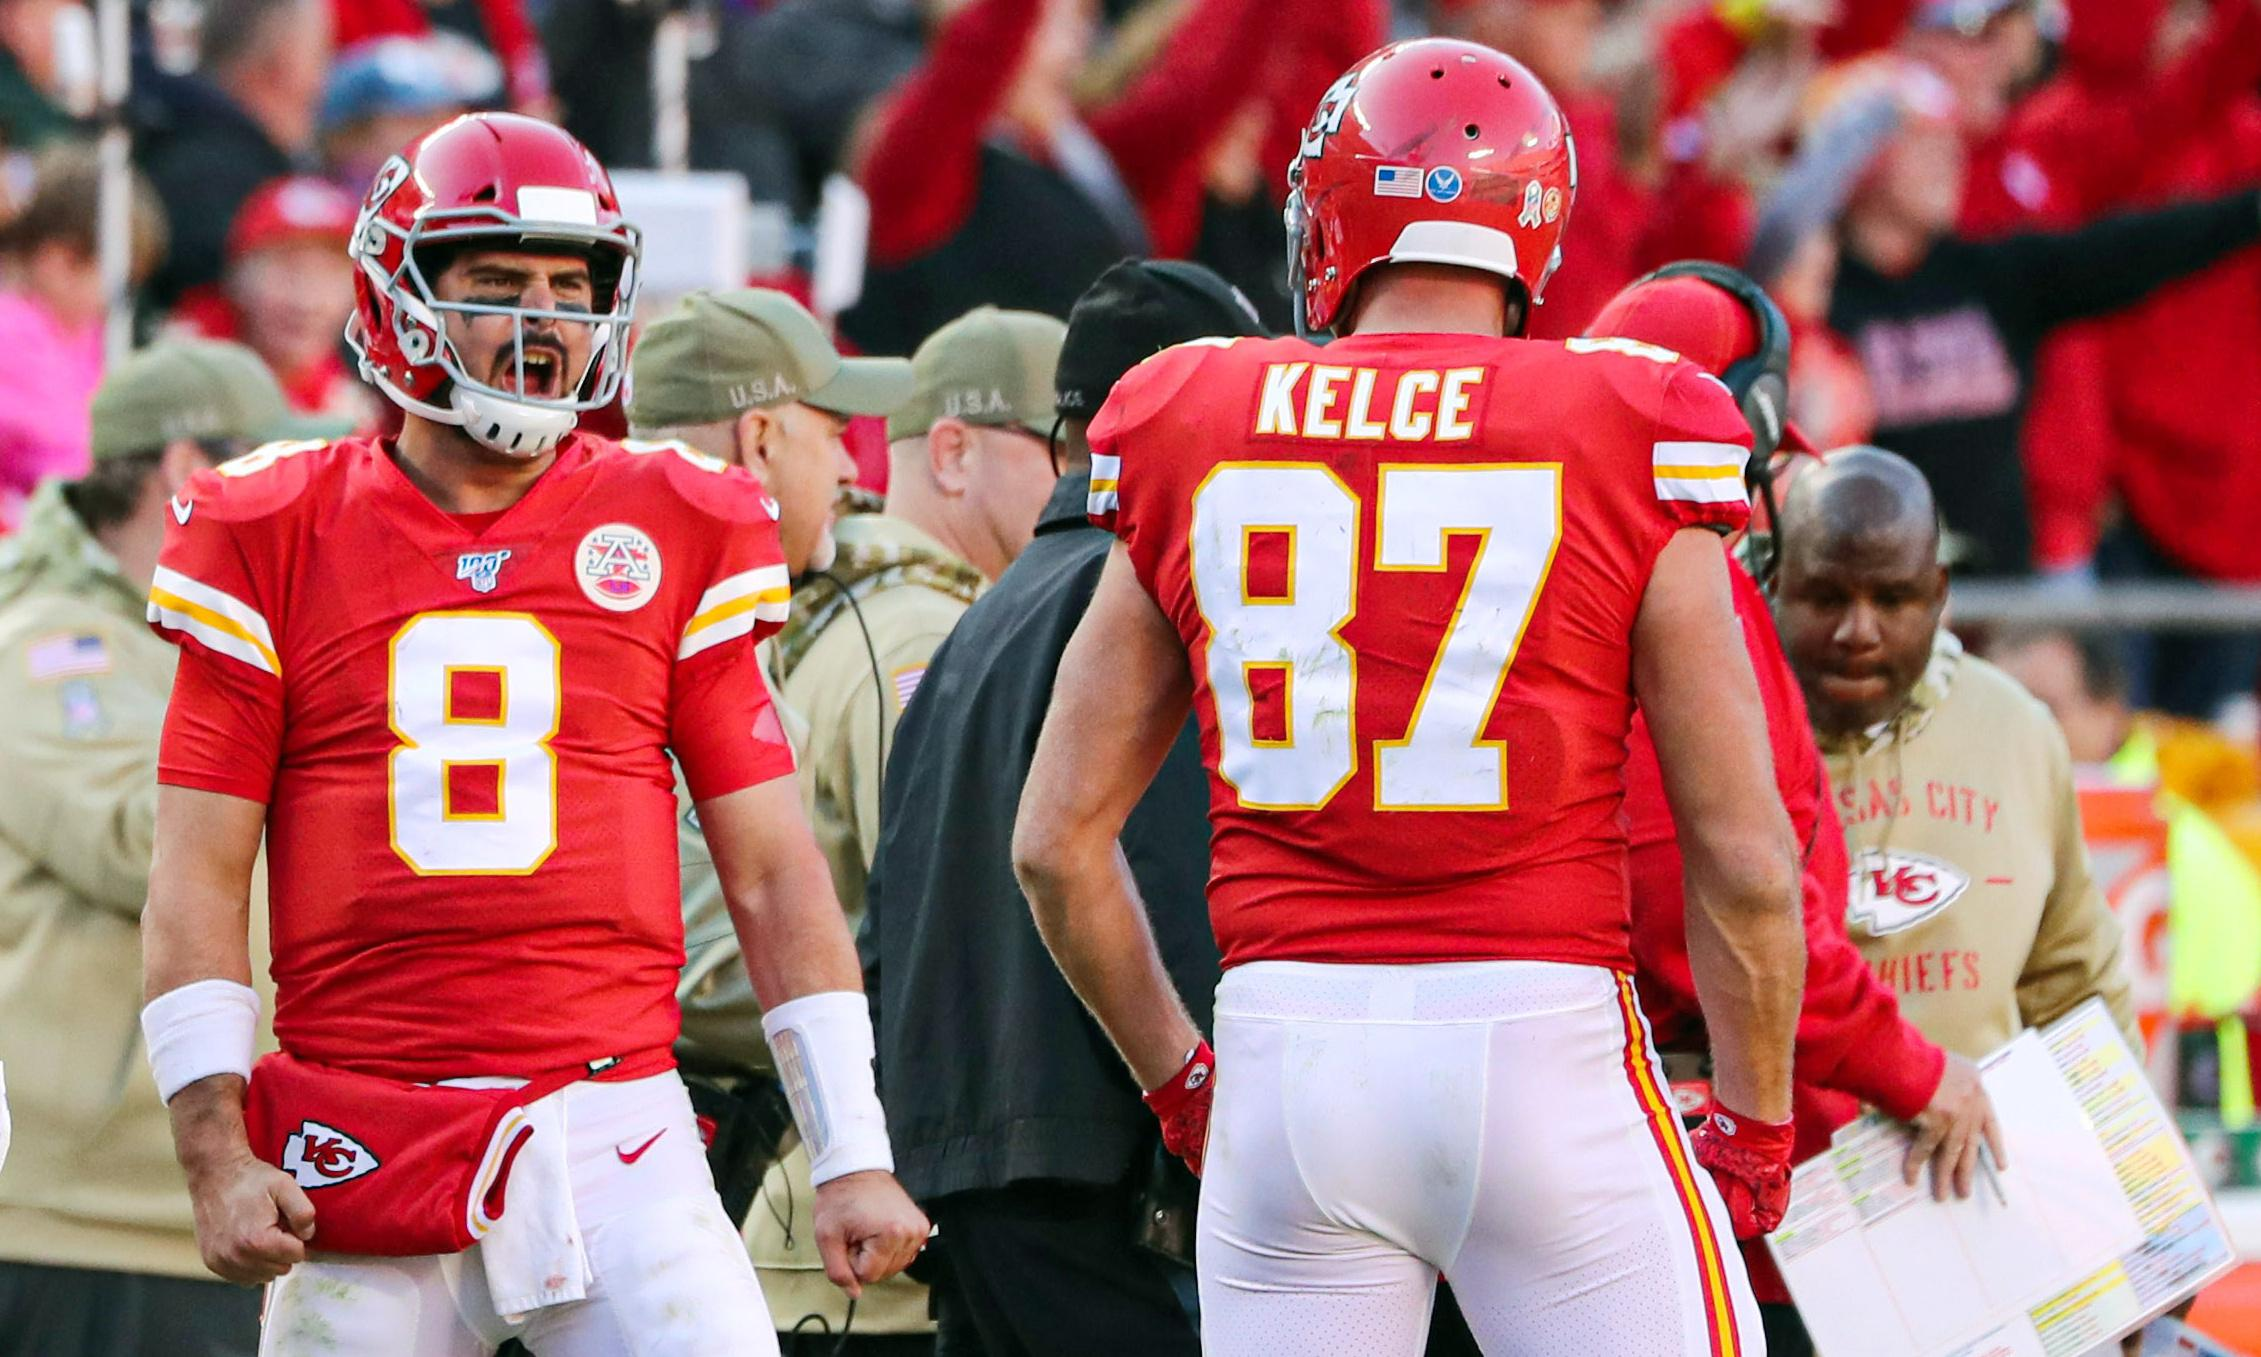 When the Chiefs win with a high-school coach at QB, we know they are for real